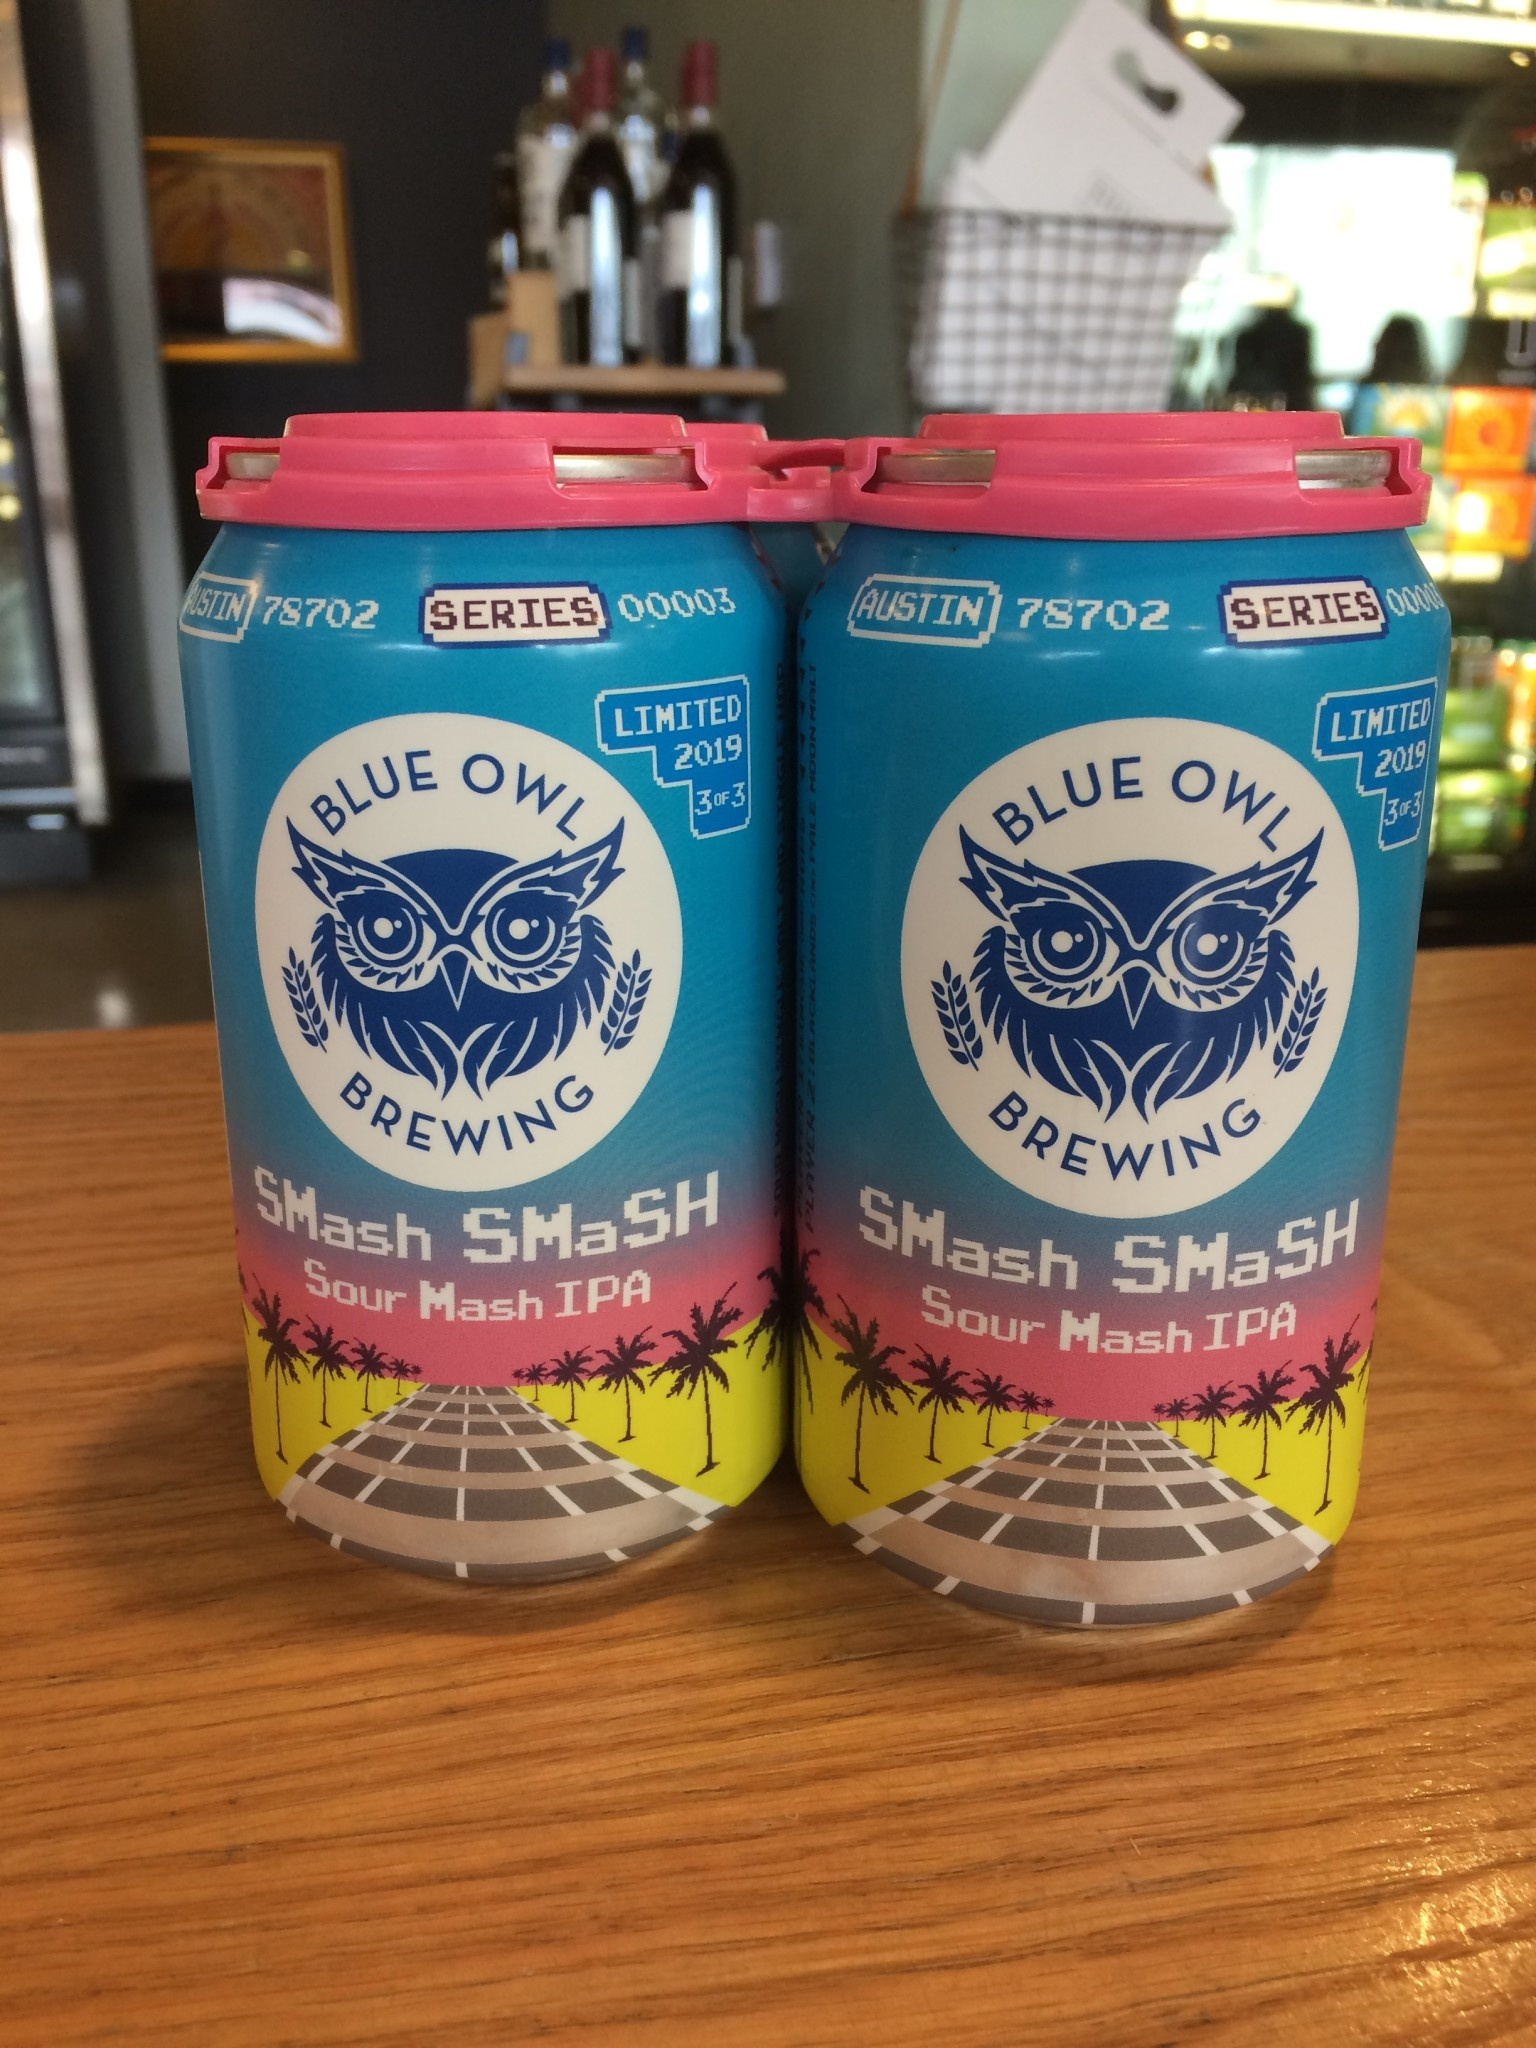 Blue Owl Brewing Blue Owl Brewing: Smash Smash IPA 12oz 4pk